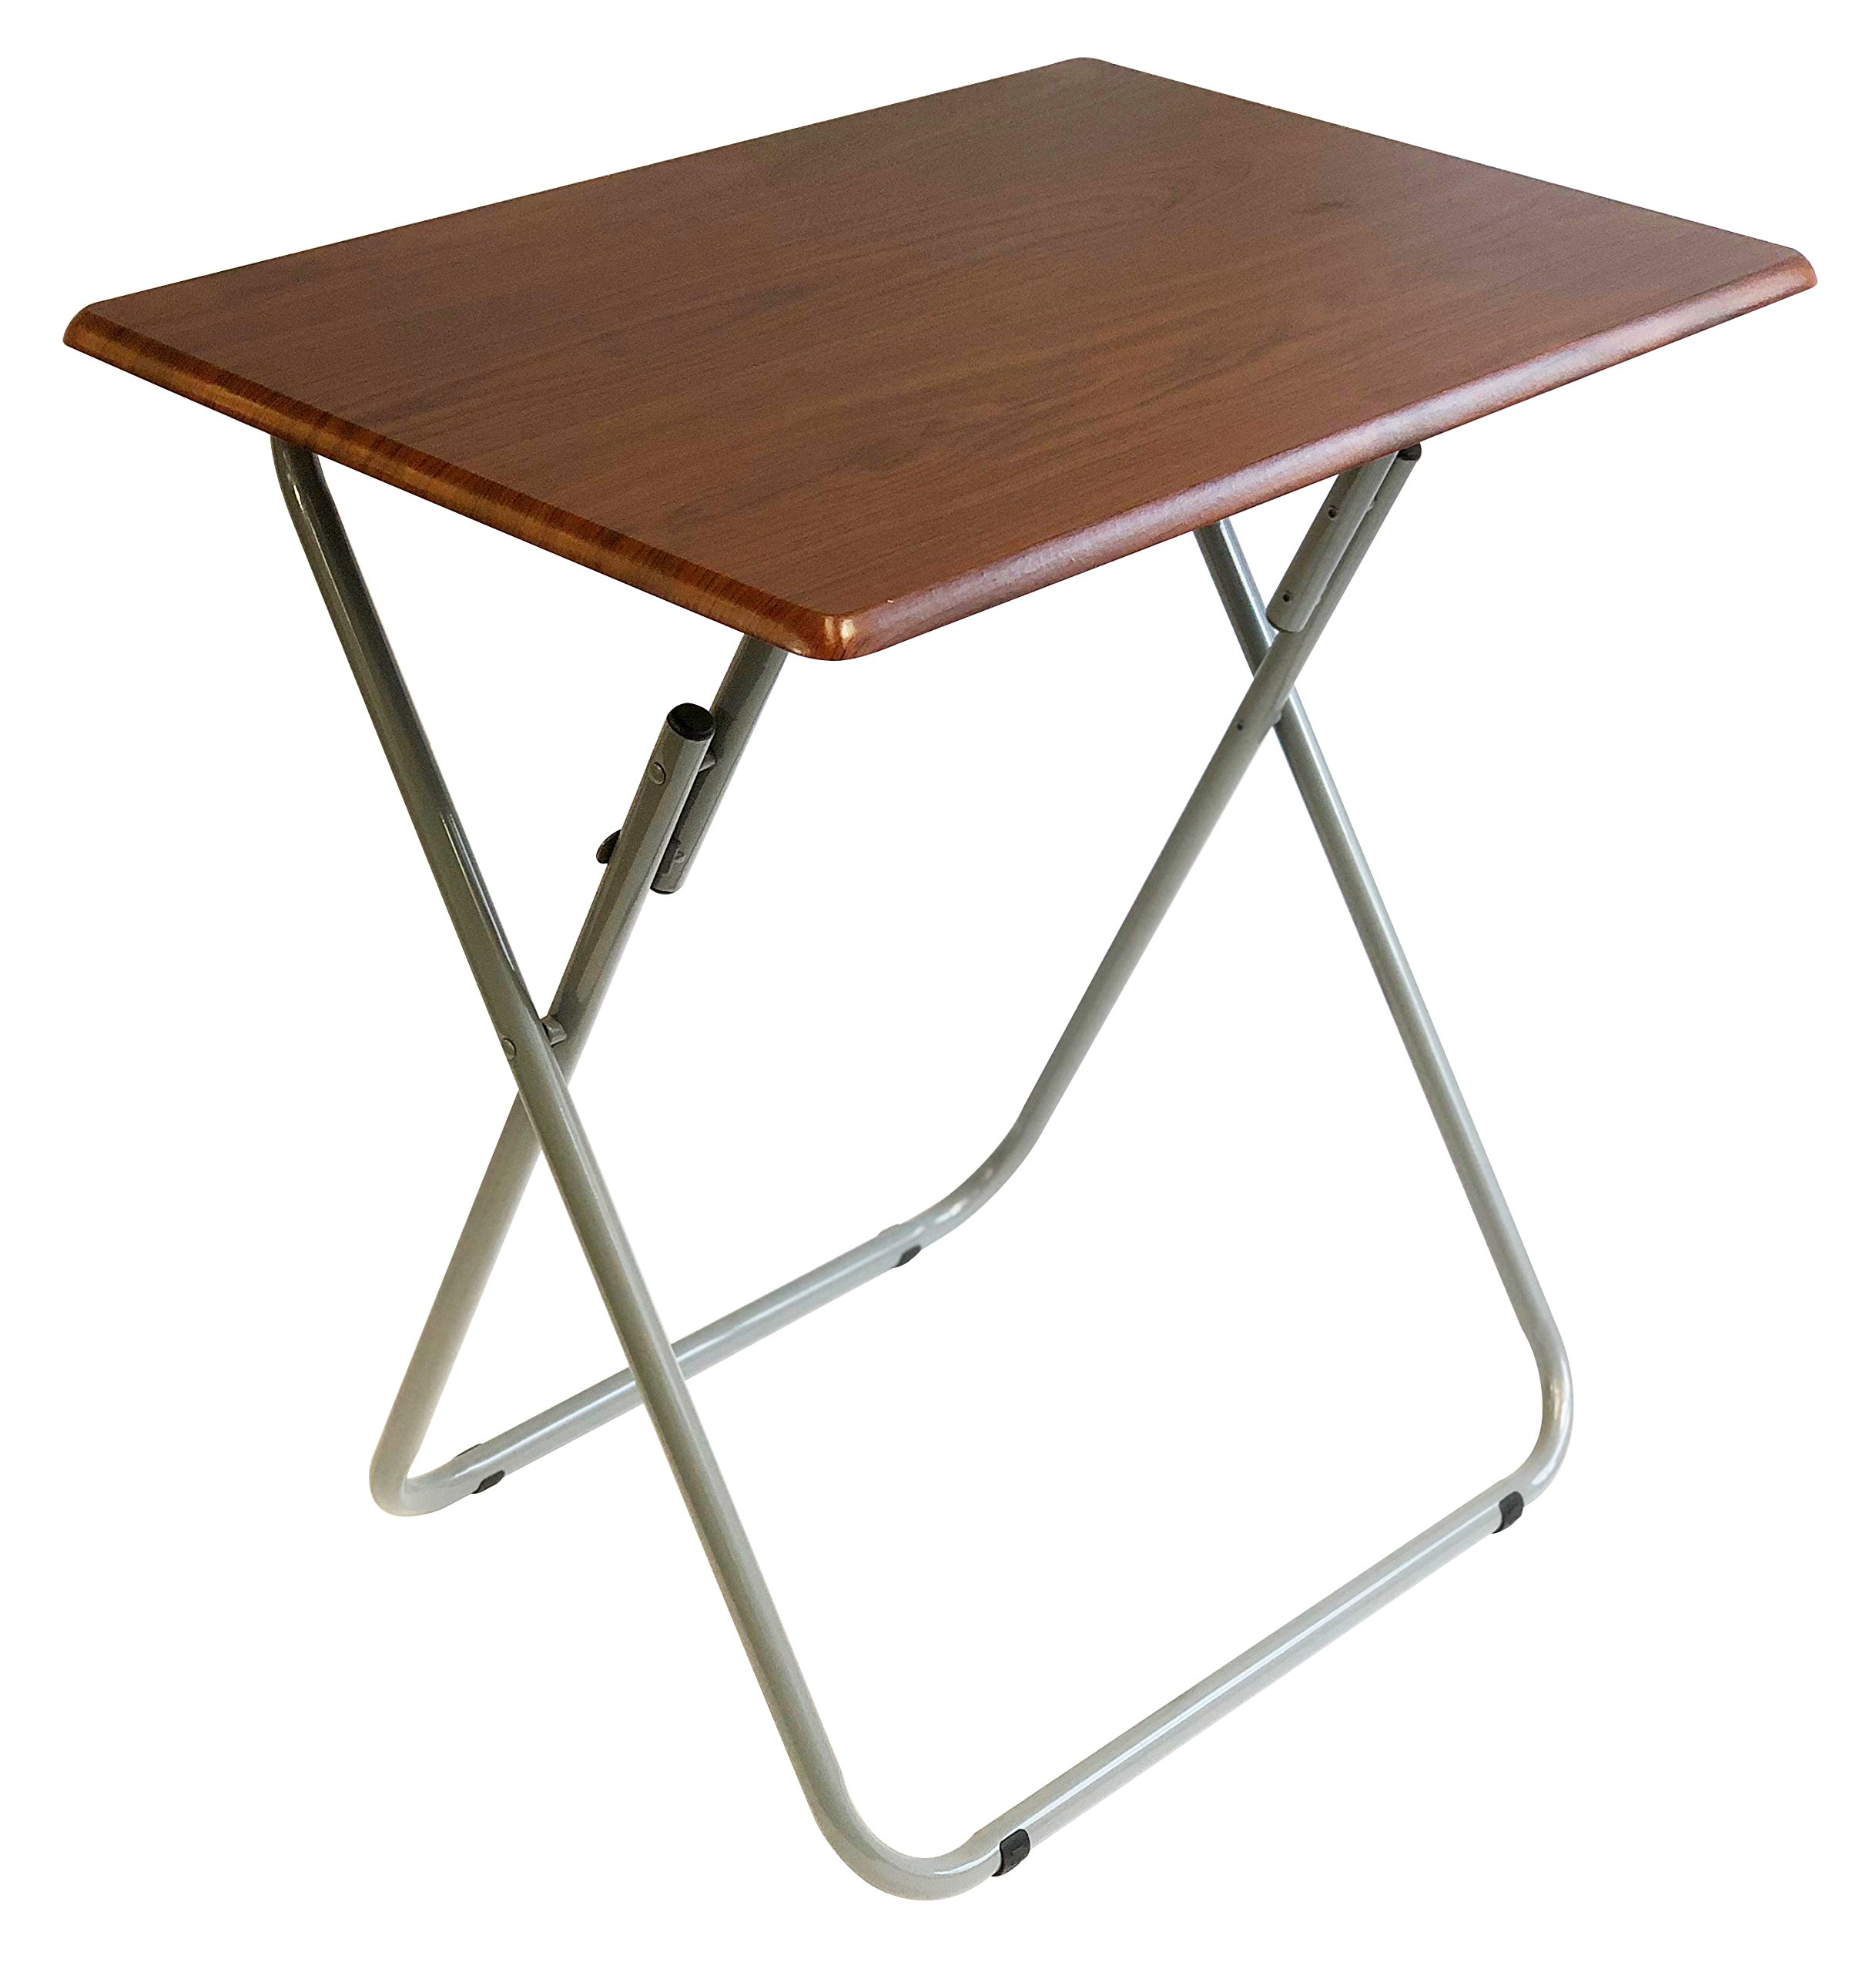 Wee's Beyond 1306 Over-Sized TV Tray Folding Table, Cherry by Wee's Beyond (Image #1)